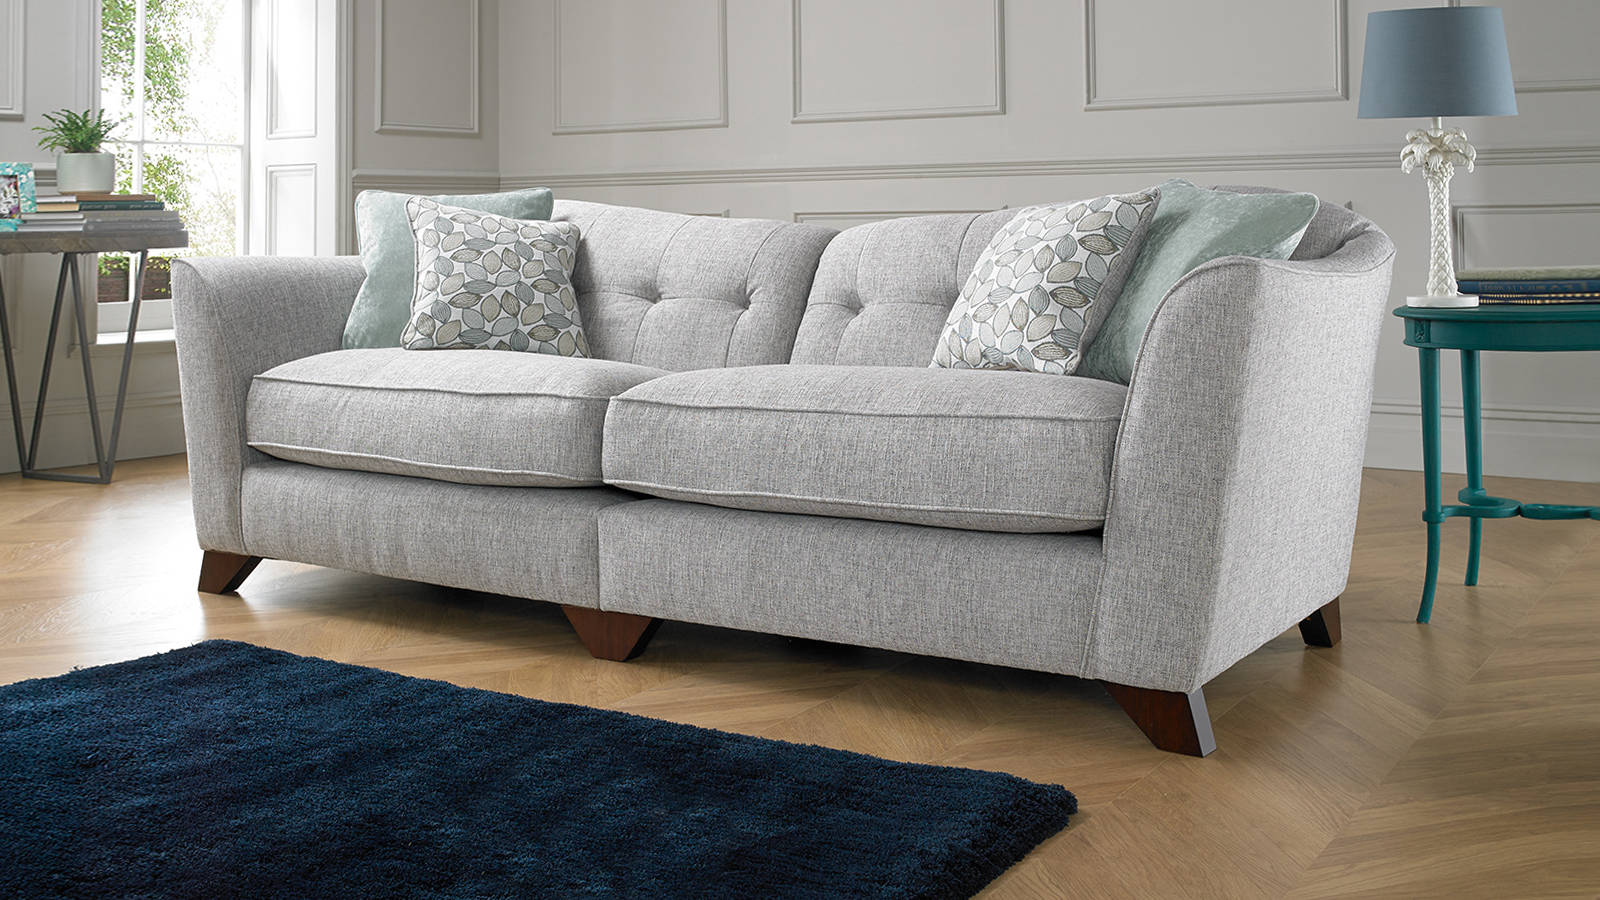 Low Seating Furniture Living Room Sofology Sofas Corner Sofas Sofa Beds Chairs Always Low Prices